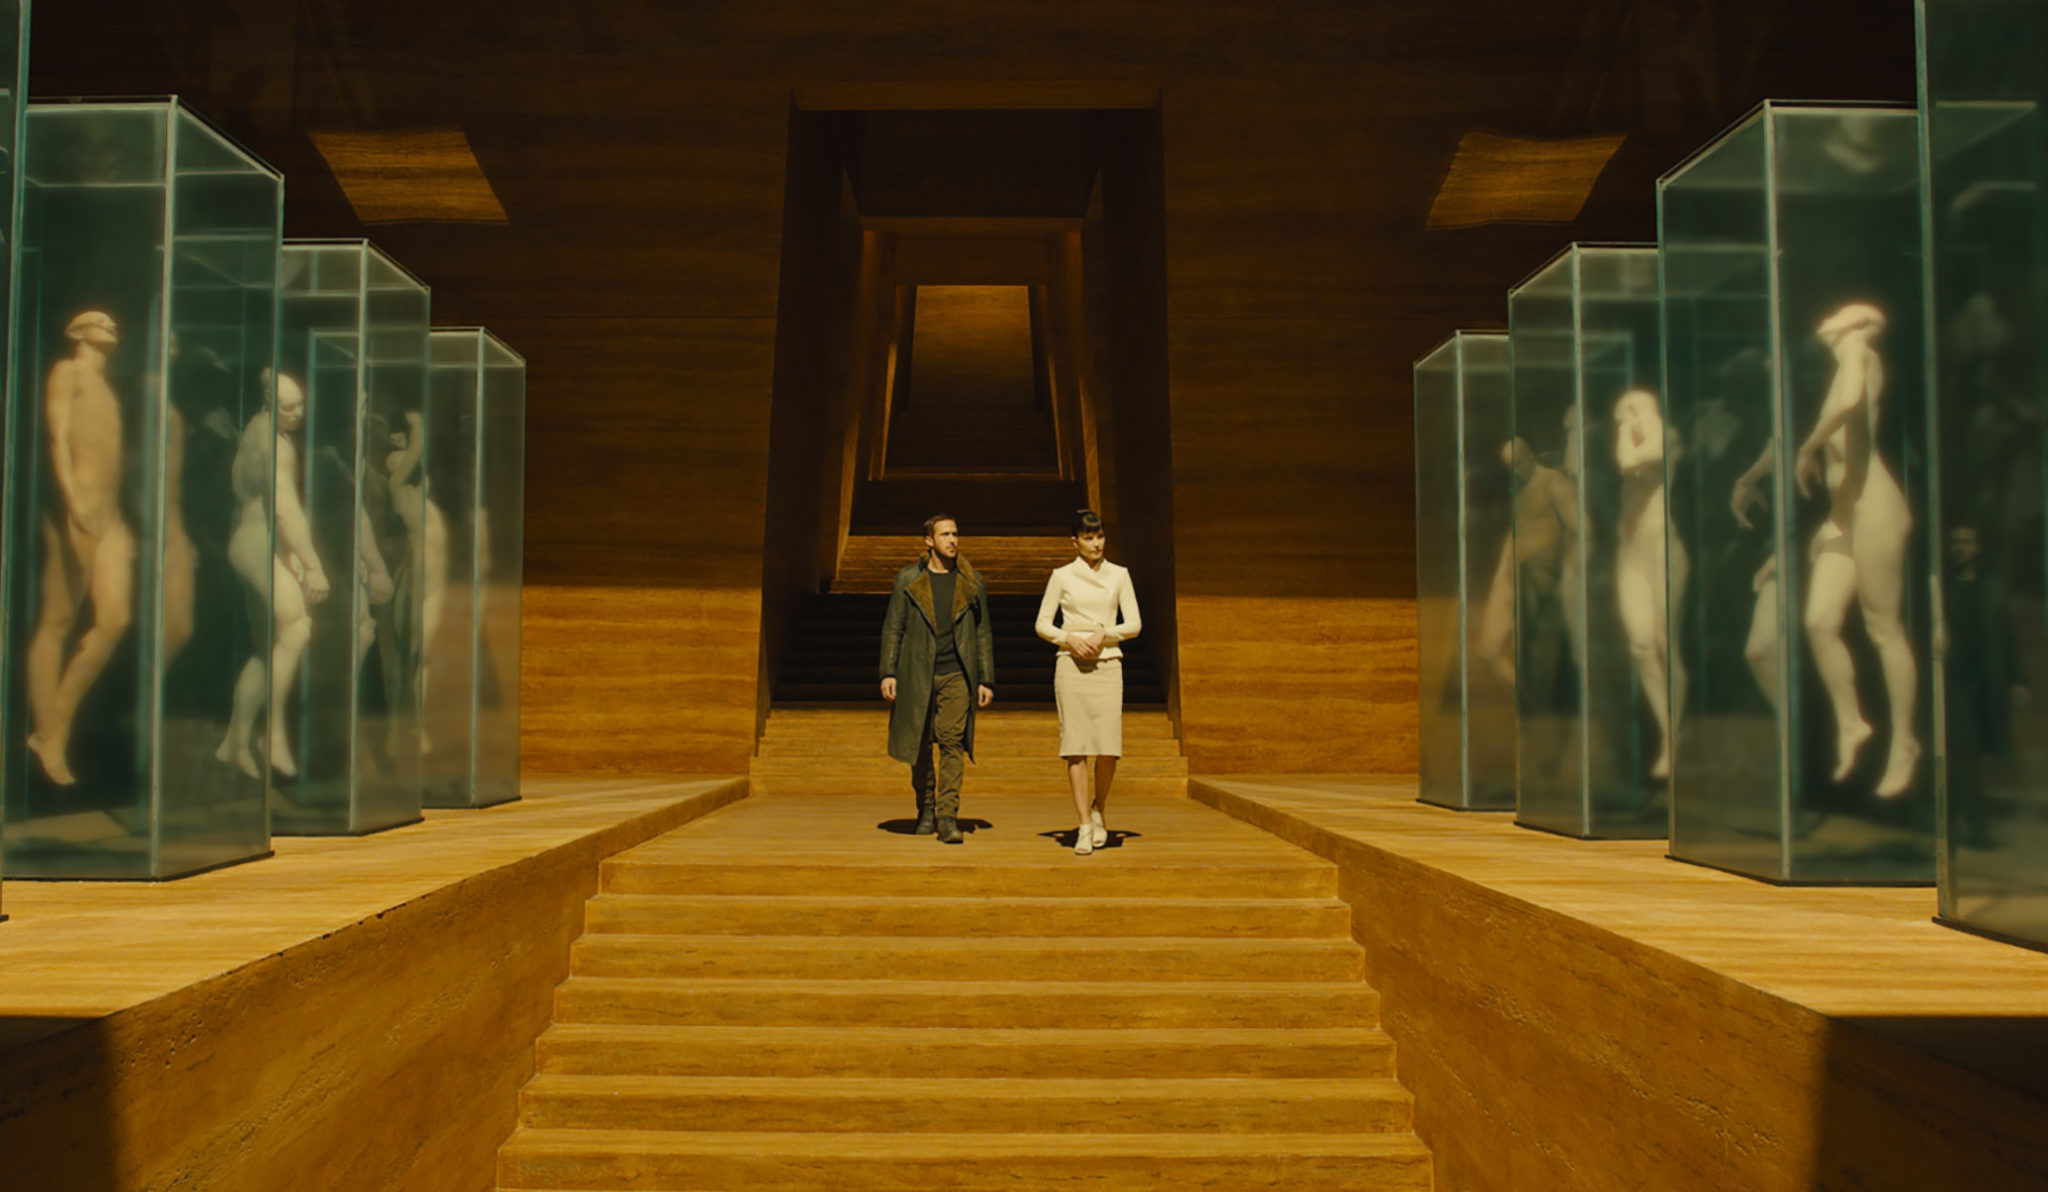 The hall of replicants